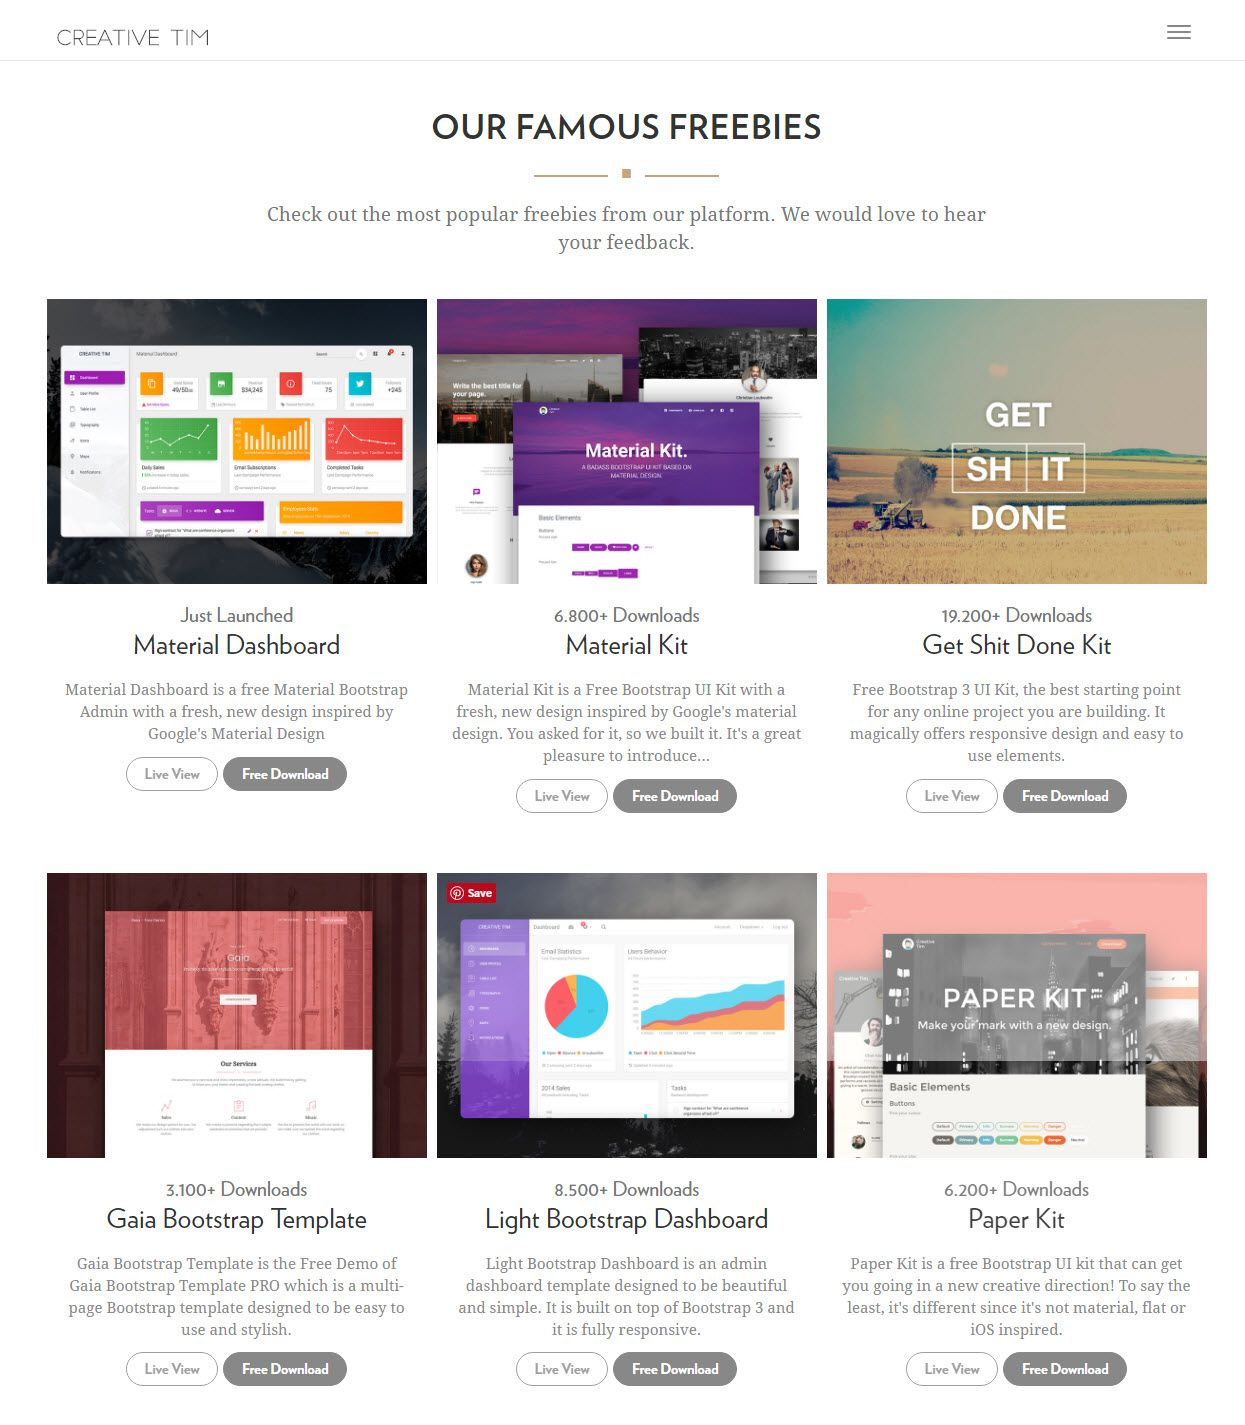 Creative Tim offers Bootstrap based design elements speed